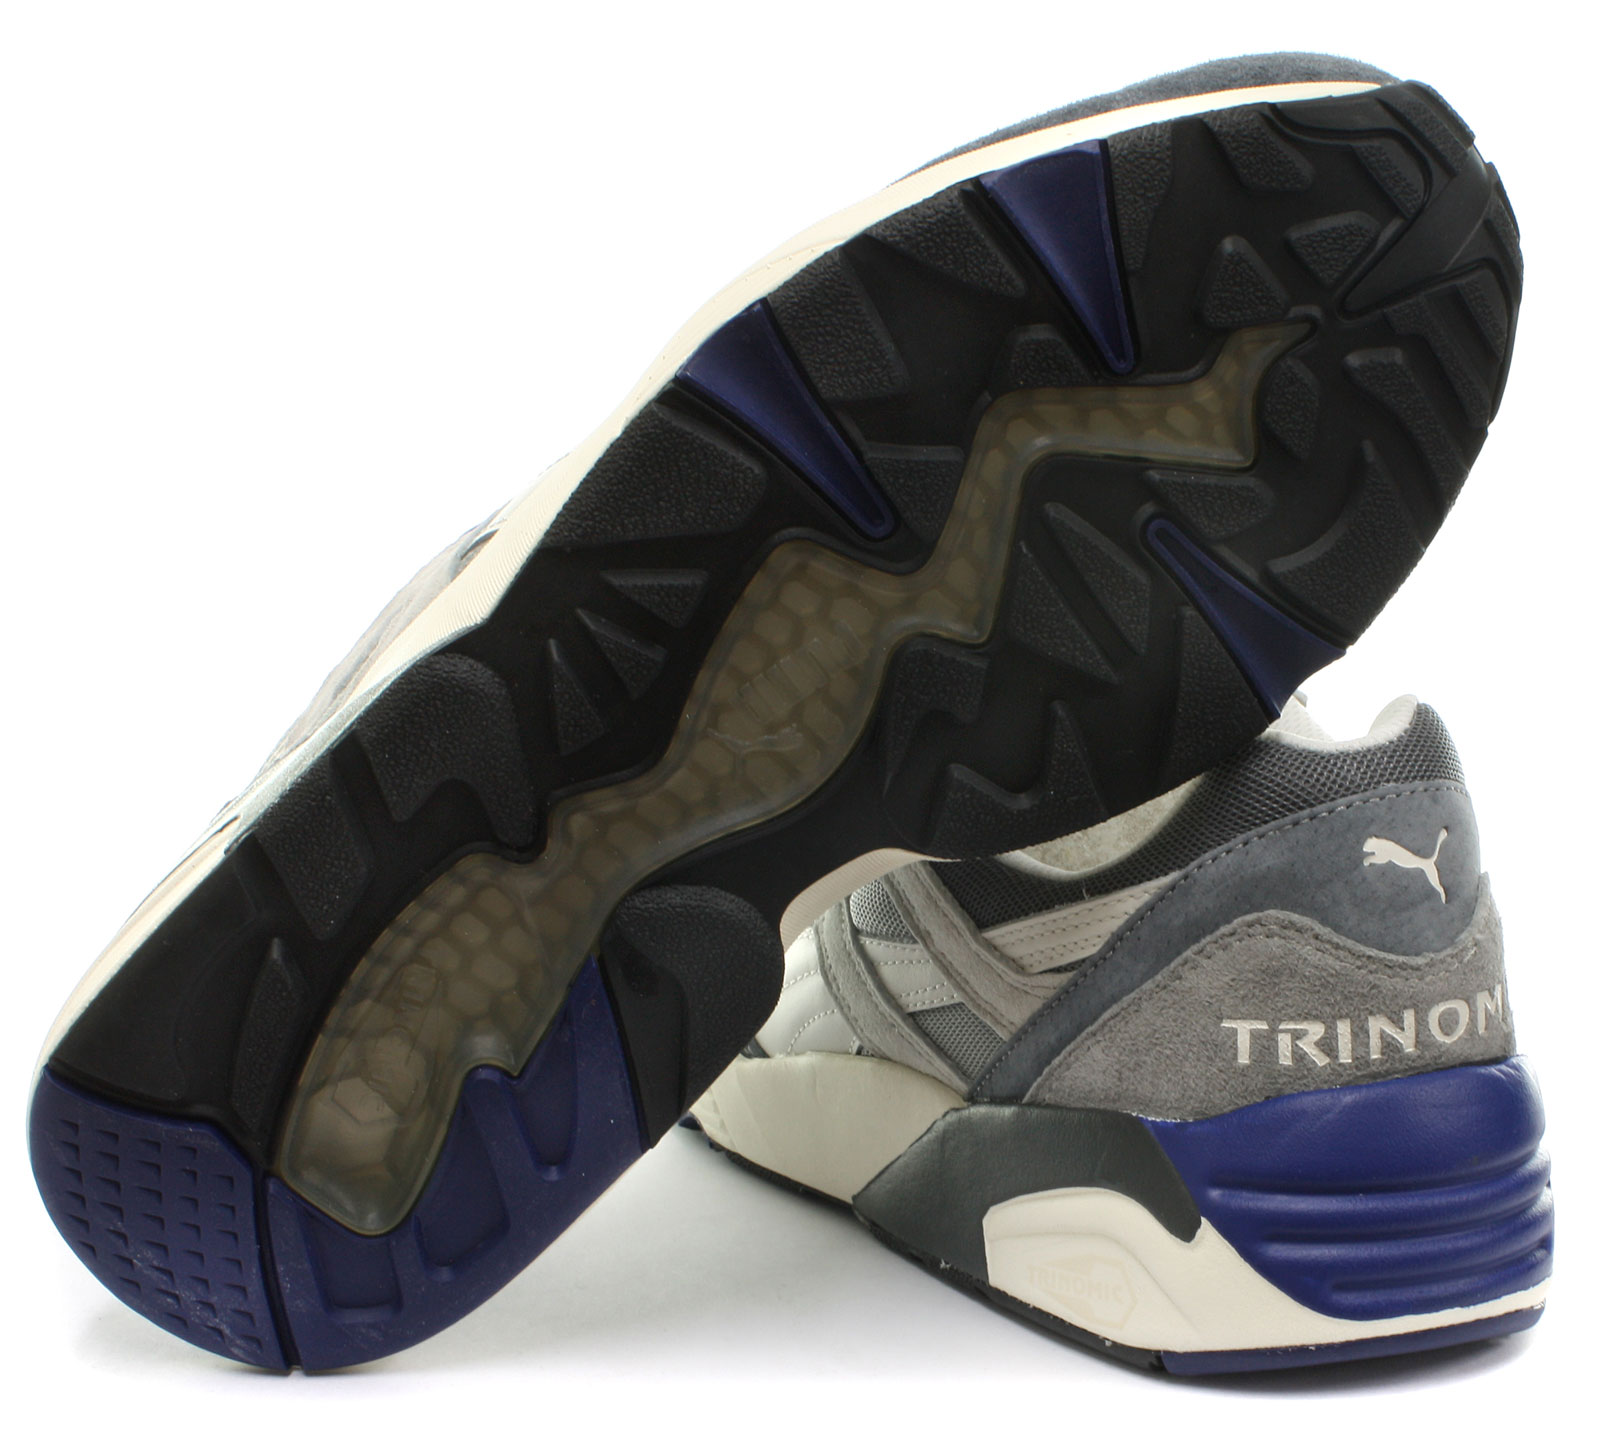 New Puma R698 homme Trainers Trainers Trainers ALL TailleS AND COLOURS 3d88db